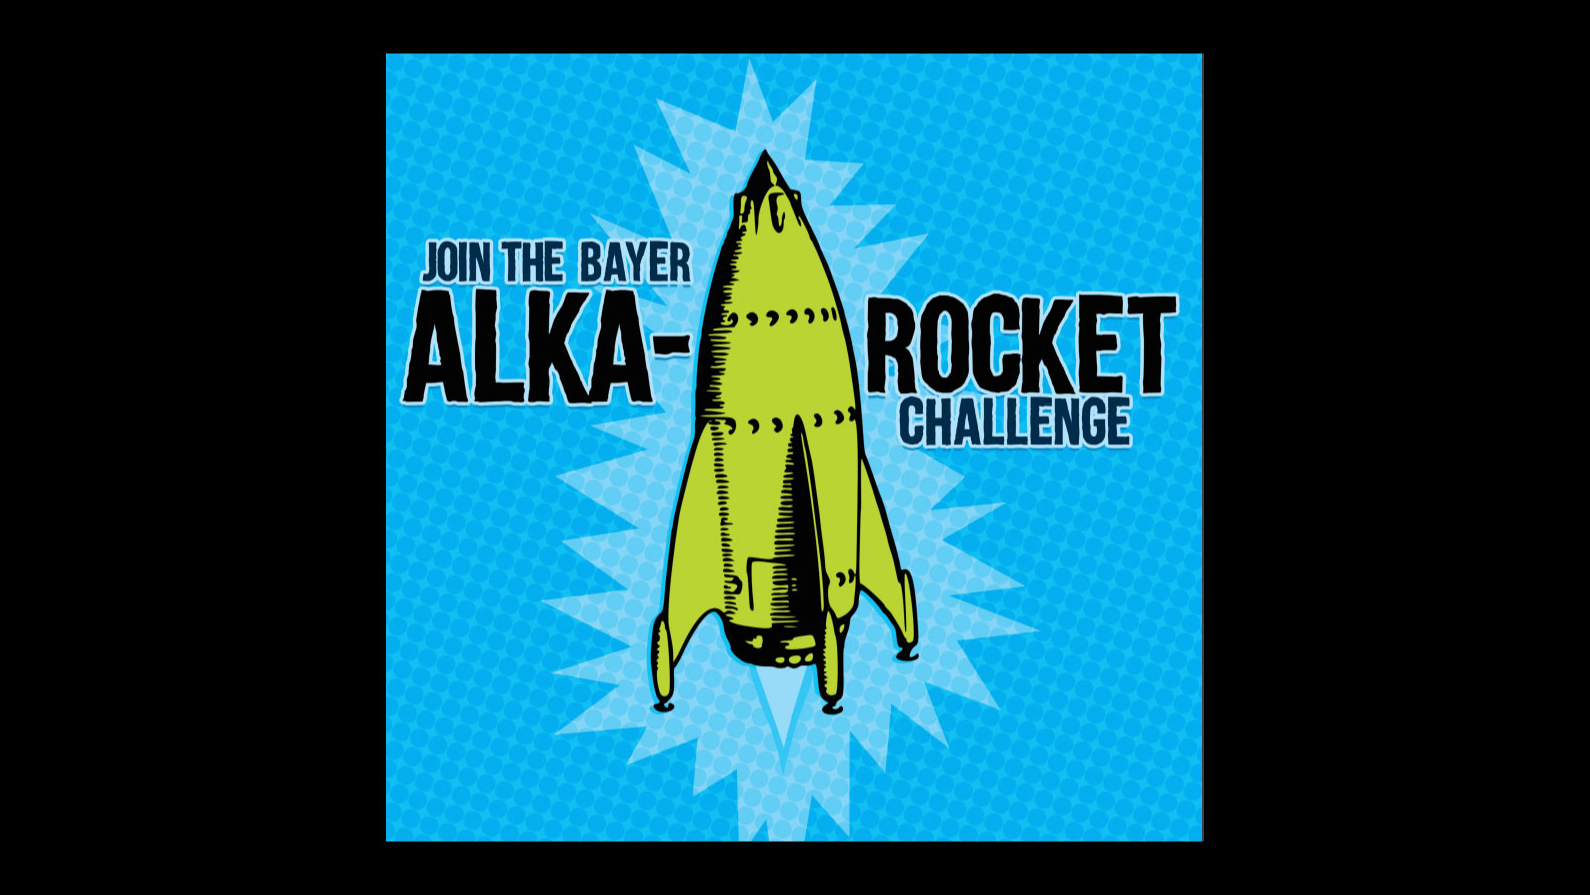 Join the Bayer Alka-Rocket Challenge